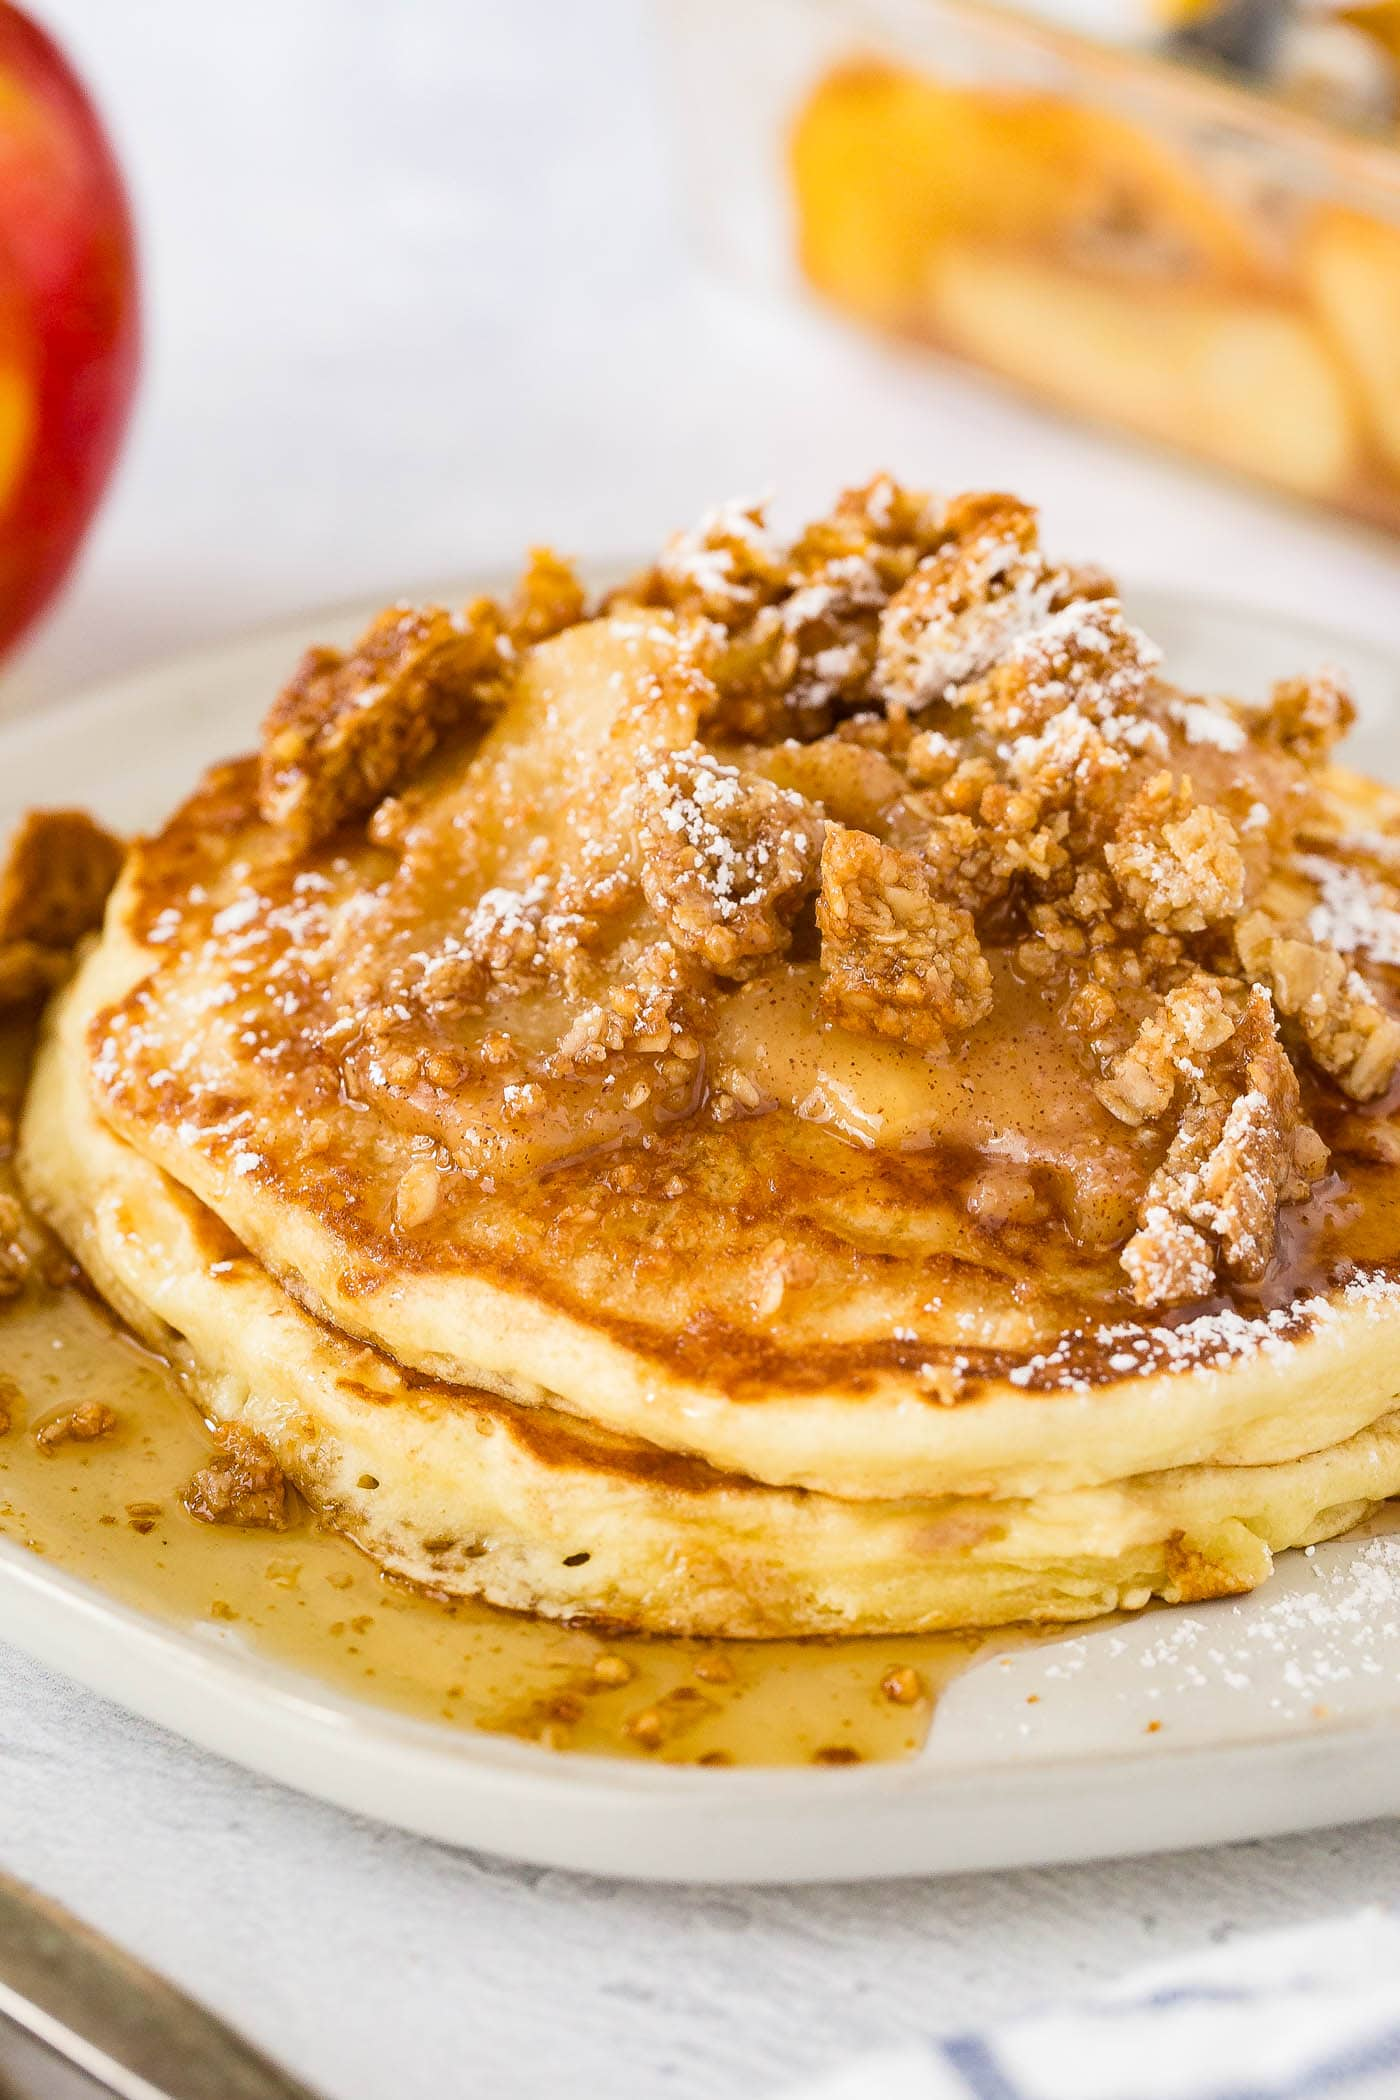 a plate stacked with fluffy pancakes topped with roasted apples, crumbled granola, powdered sugar and a drizzle of syrup with a side of bacon.